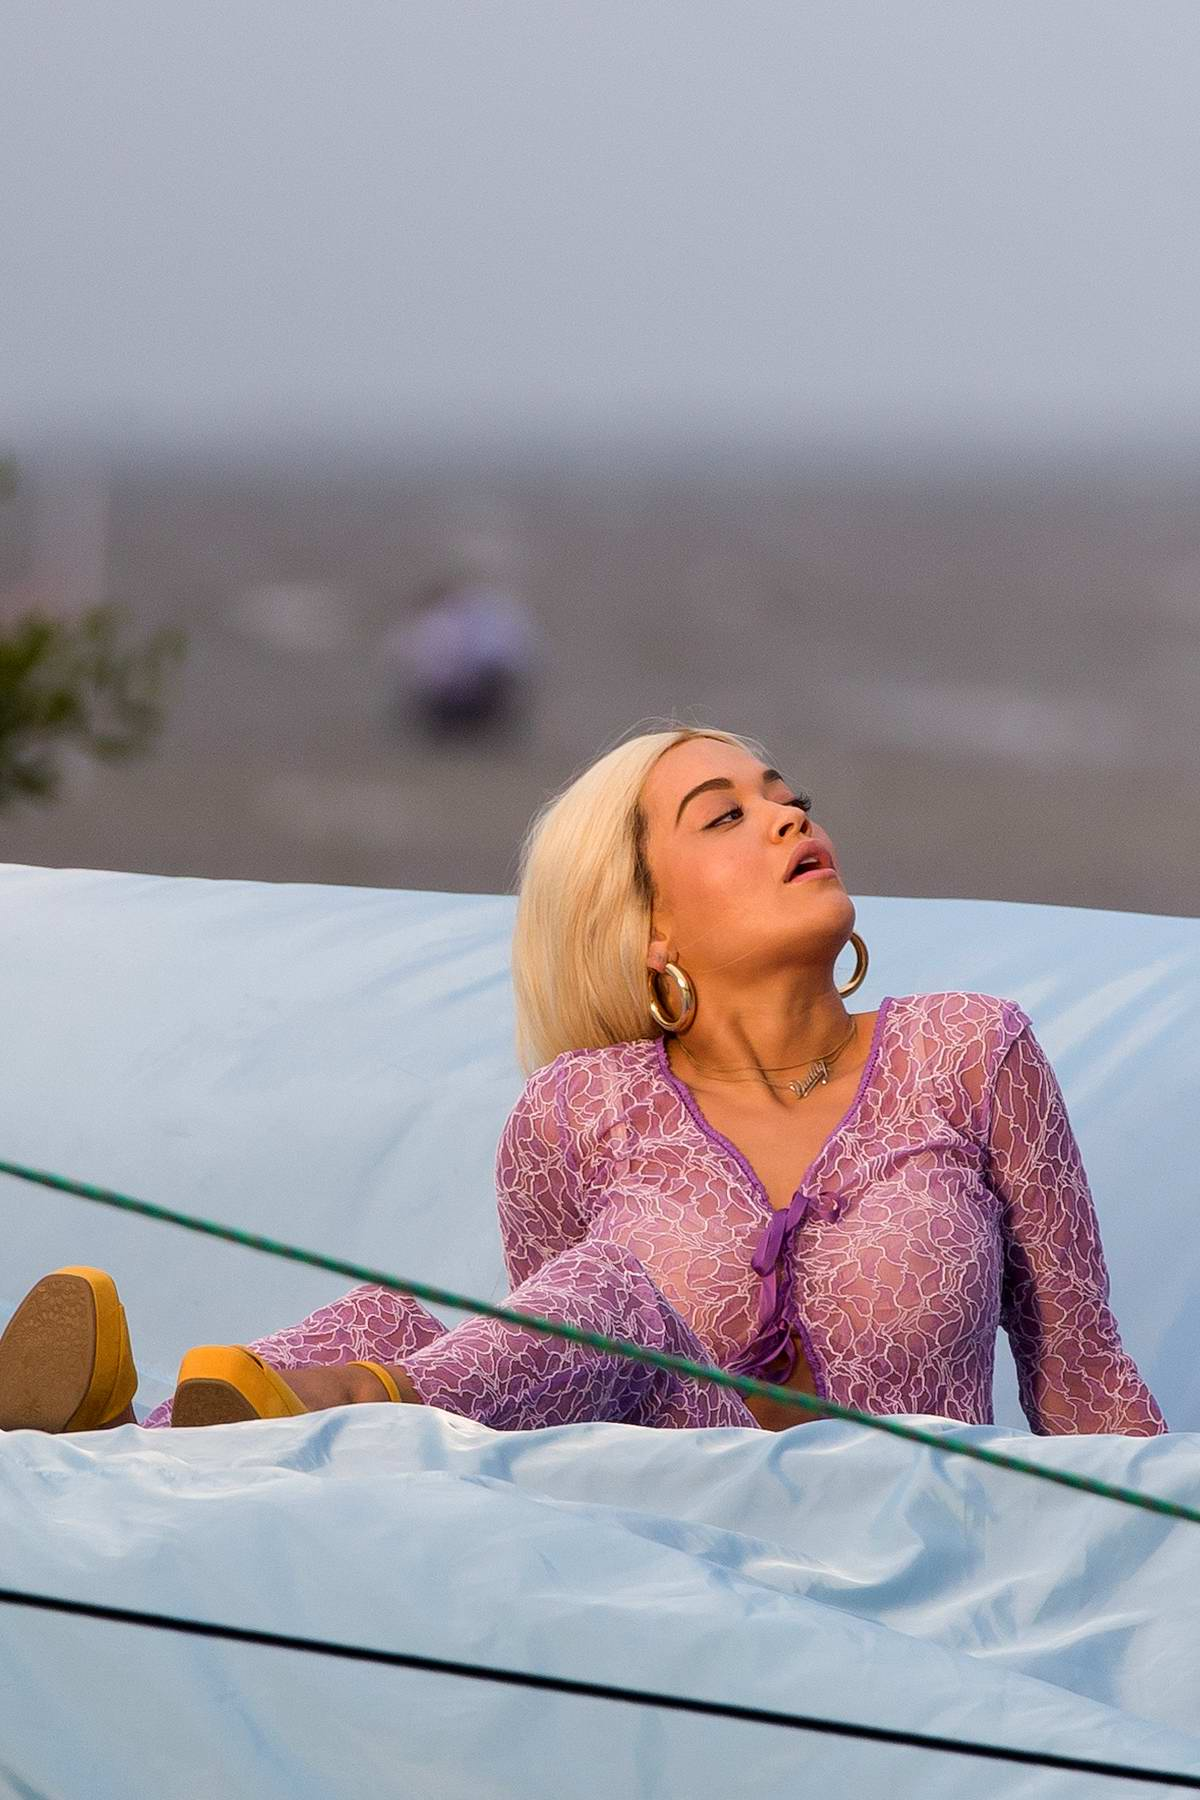 Rita Ora wears a sheer pink outfit during a music video shoot in Miami, Florida